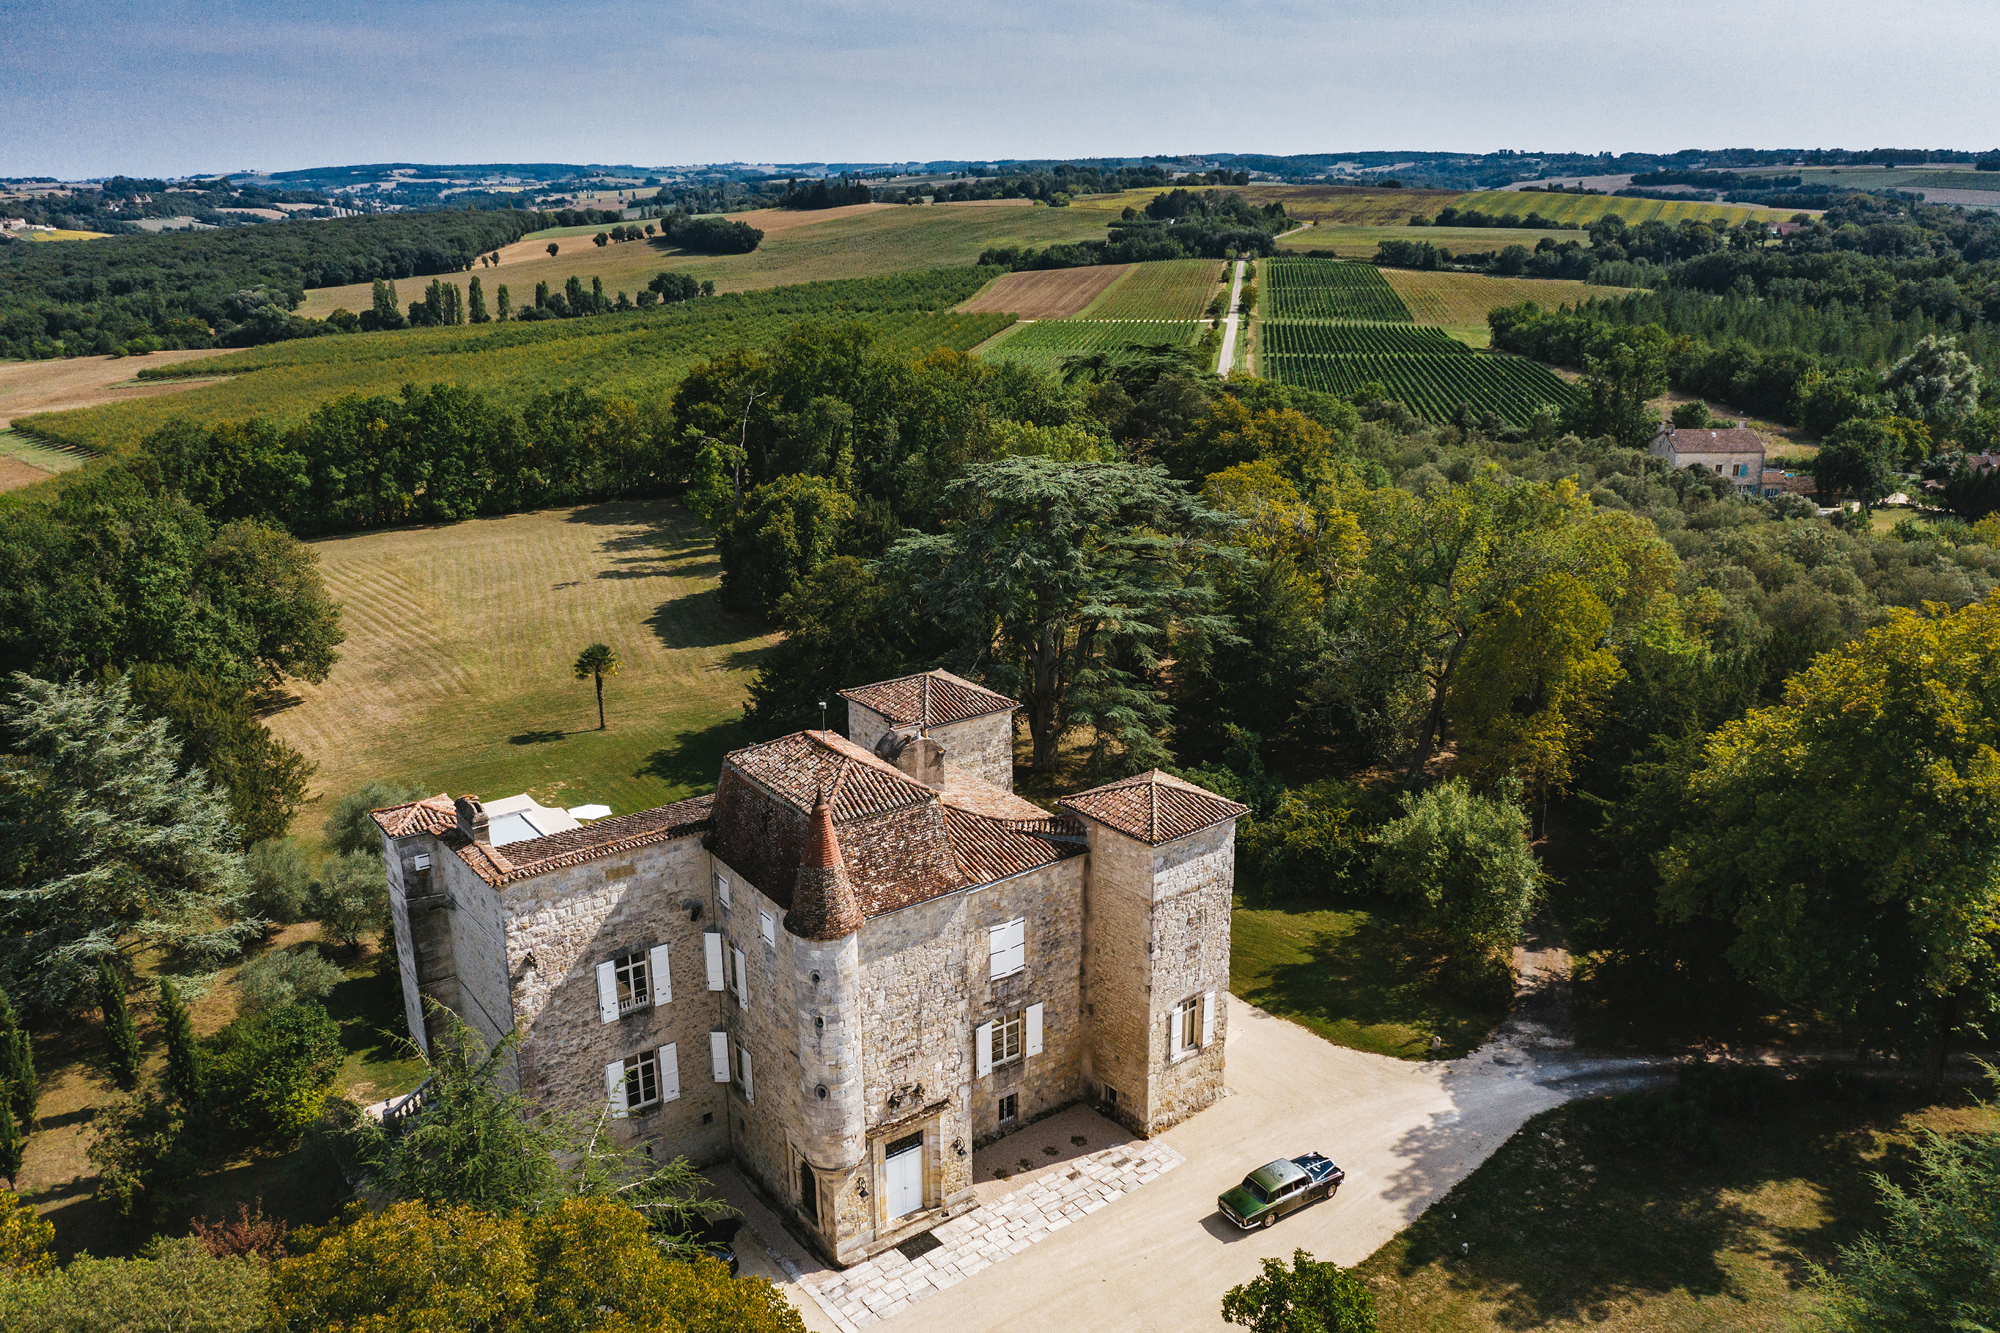 Chateau Gensac, the home of Gensac Armagnac and wines